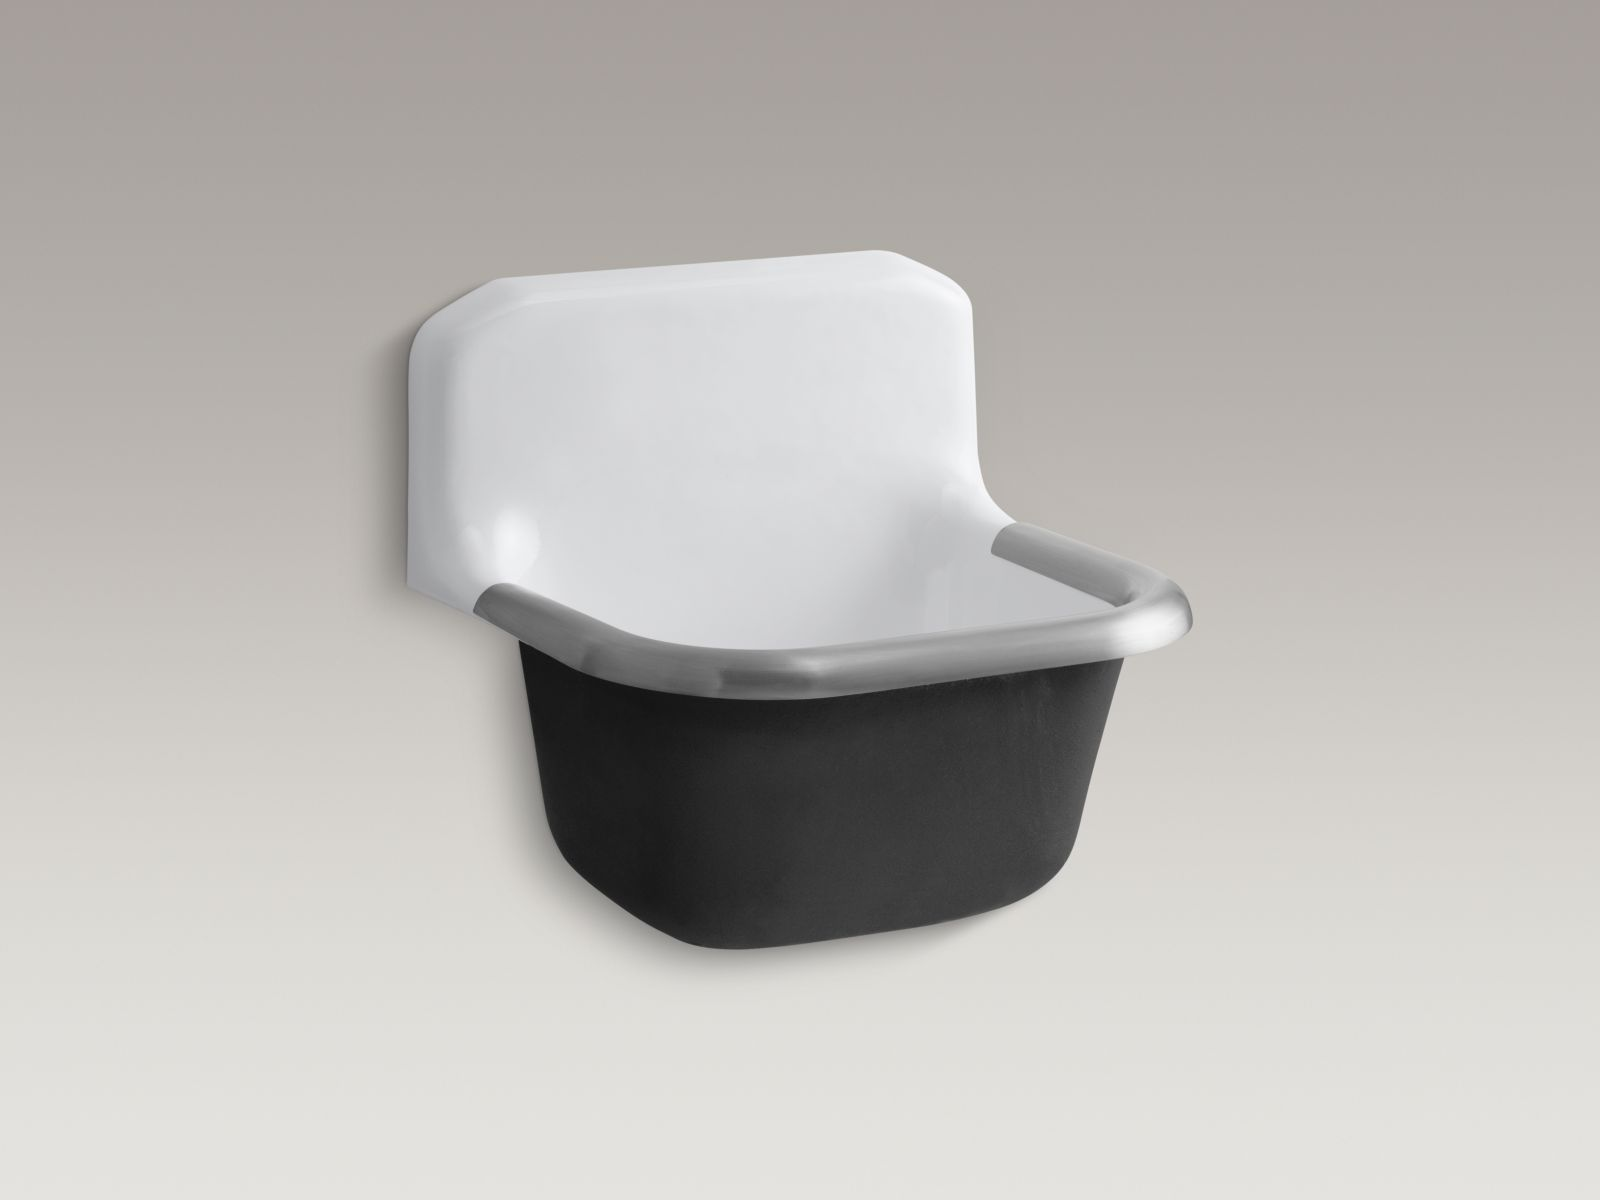 "Kohler K-6719-0 Bannon Wall-mounted 24"" x 21"" Service Sink with Rim Guard and no Faucet Holes White"